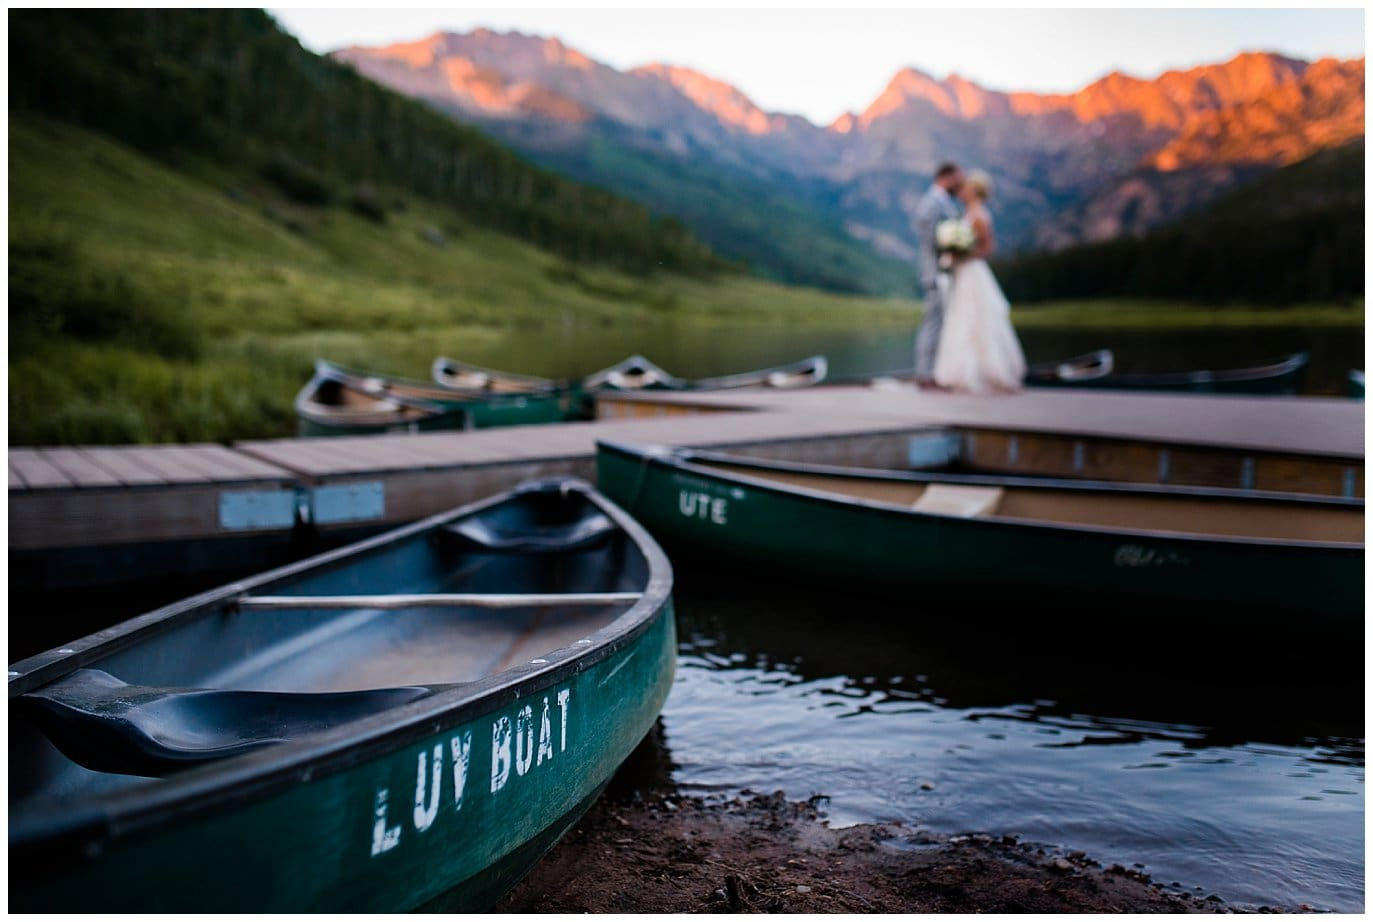 Luv Boat canoe sunset wedding photos at Piney River Ranch wedding by Vail wedding photographer Jennie Crate, Photographer